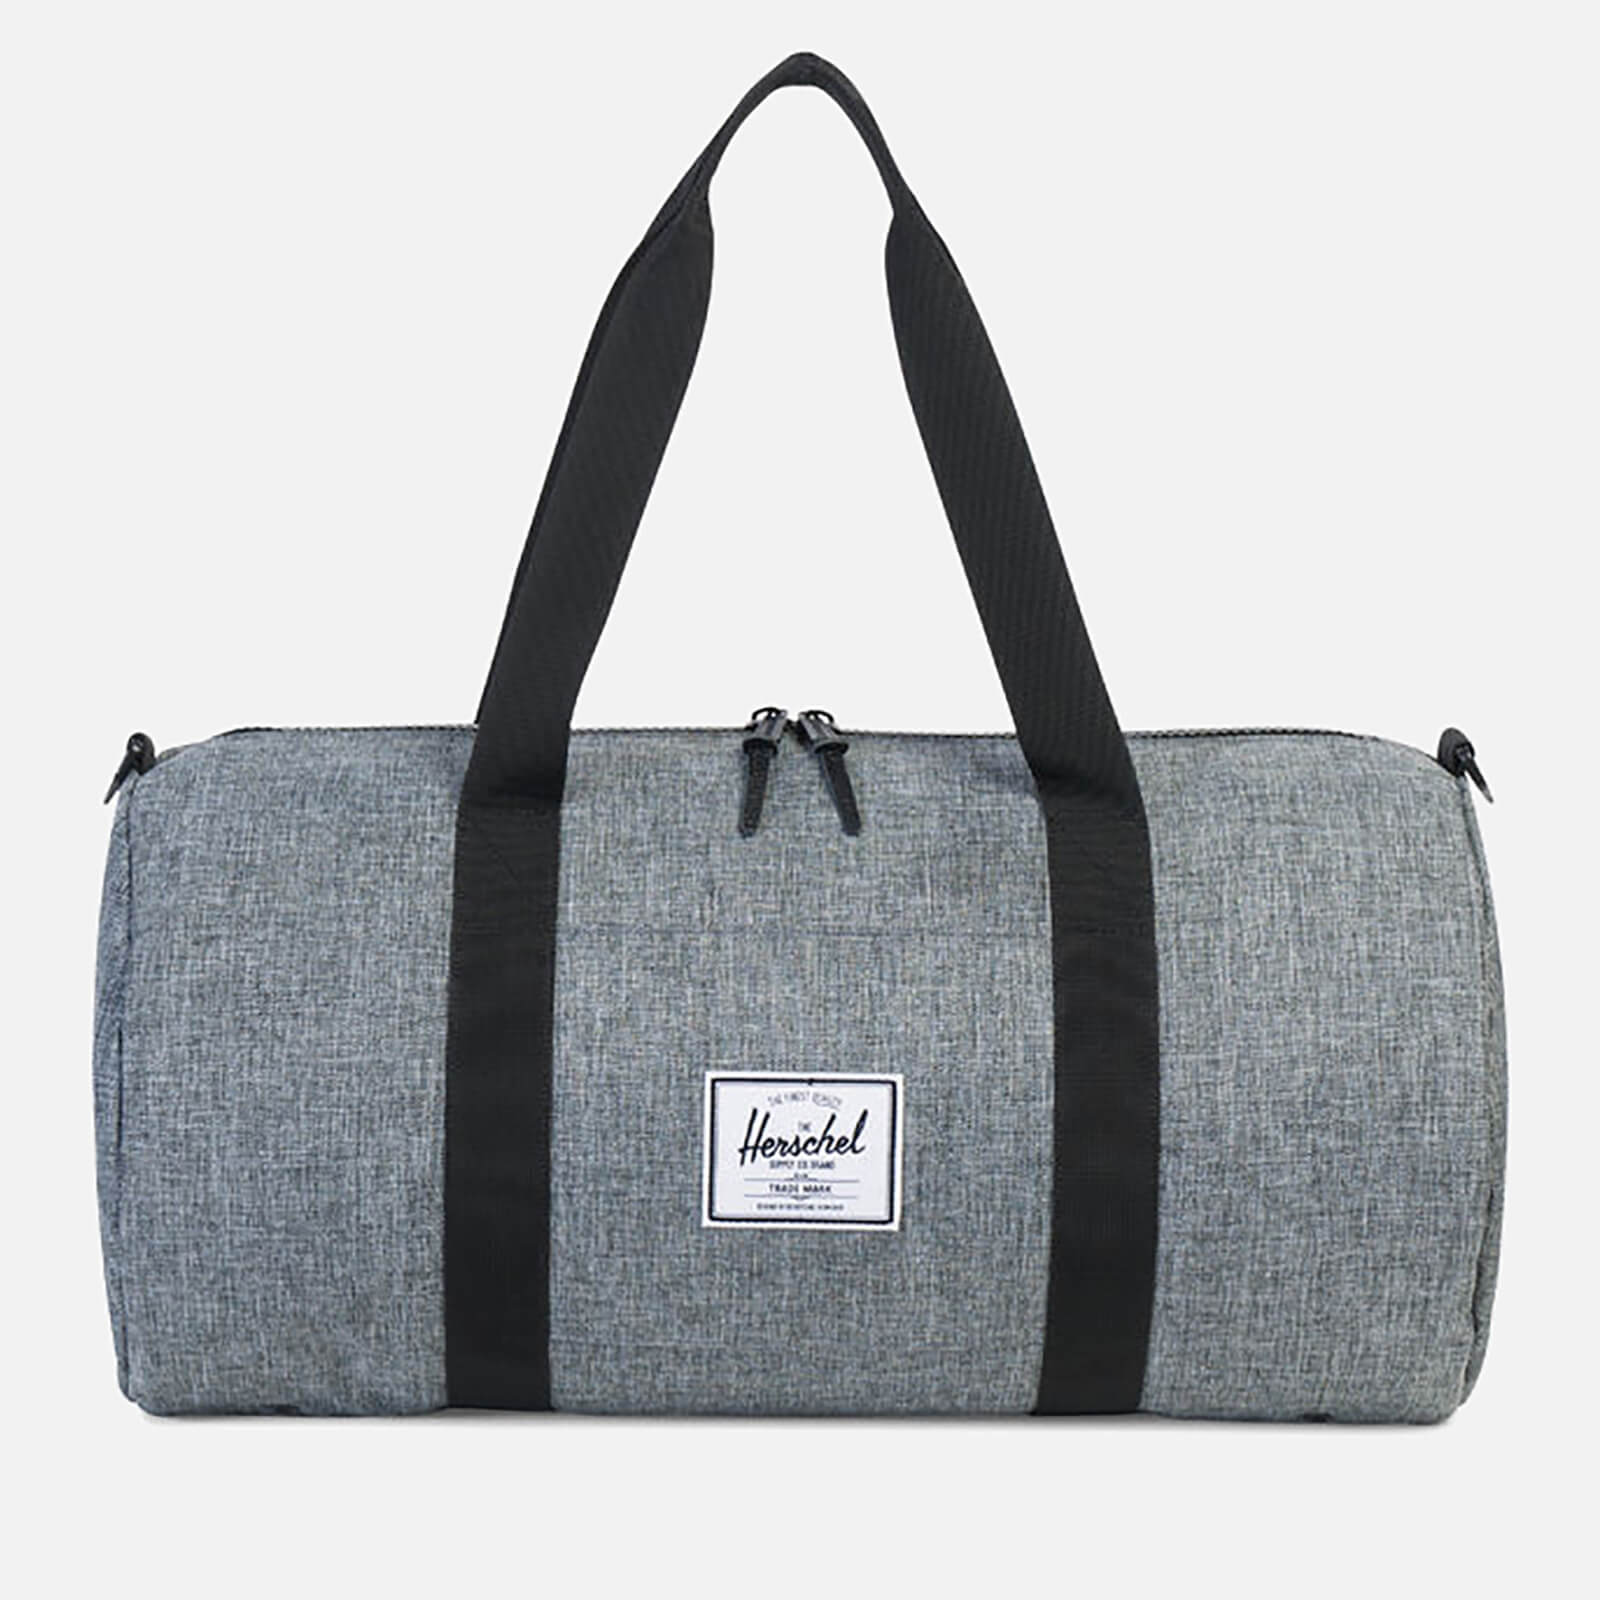 1588fe2bcc7e Herschel Supply Co. Men s Sutton Mid-Volume Duffle Bag - Raven Crosshatch  Black - Free UK Delivery over £50